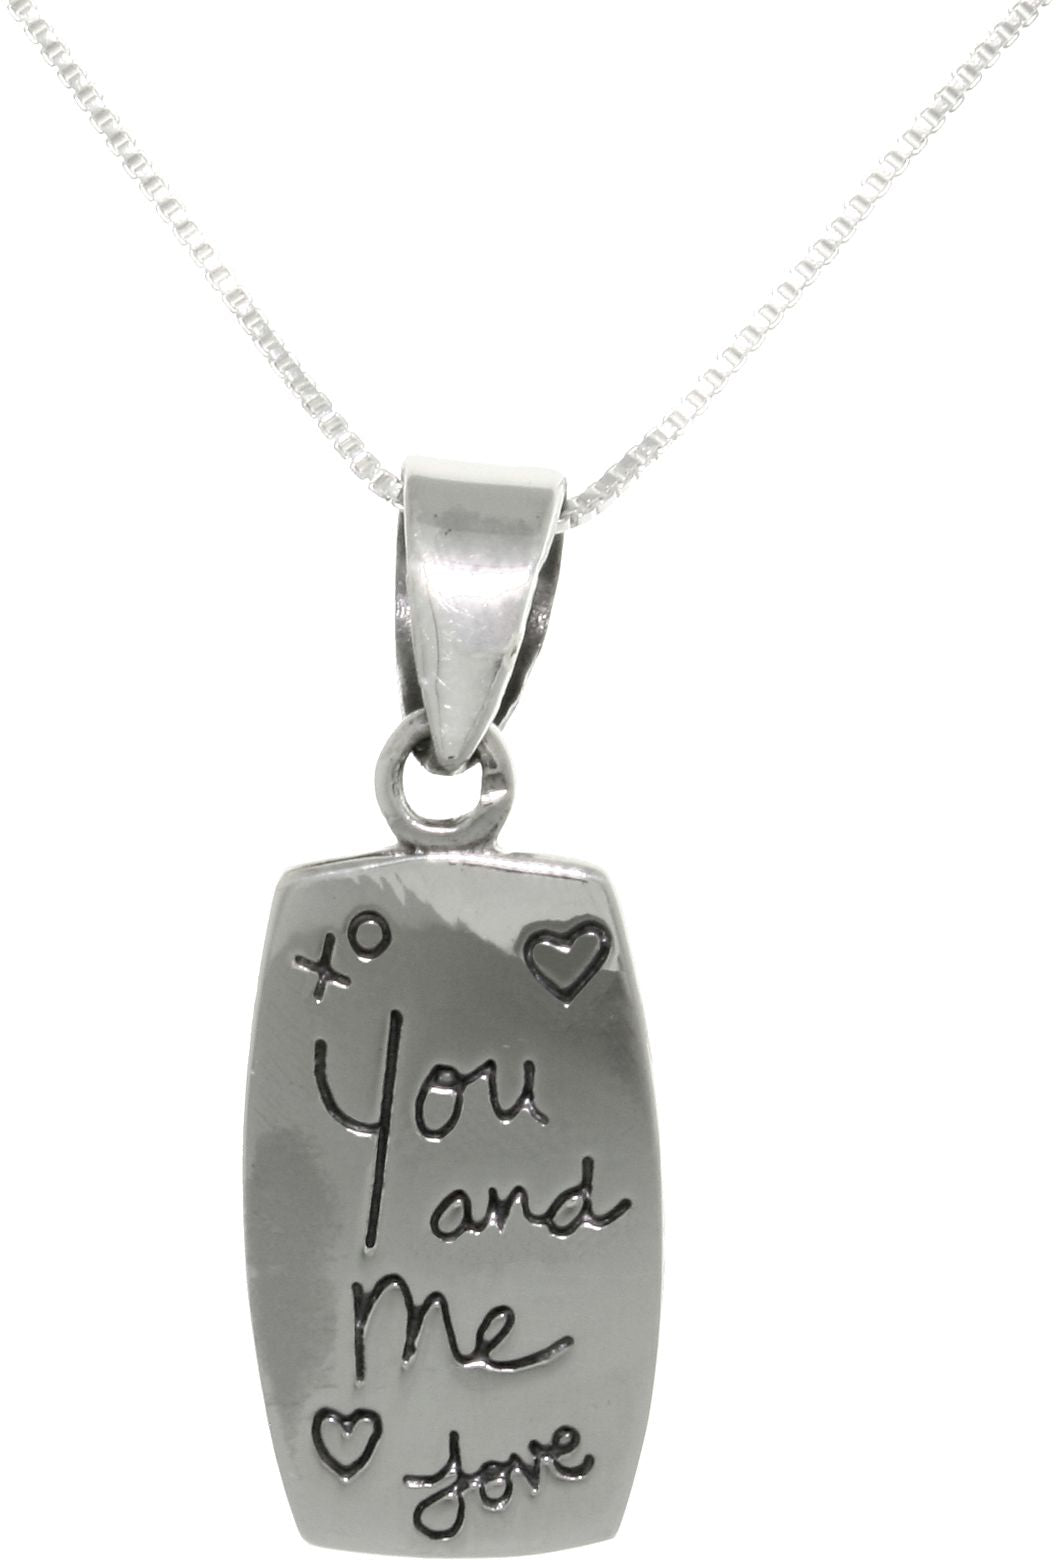 Jewelry Trends Sterling Silver Message Pendant with Words 'You and Me Love' Necklace